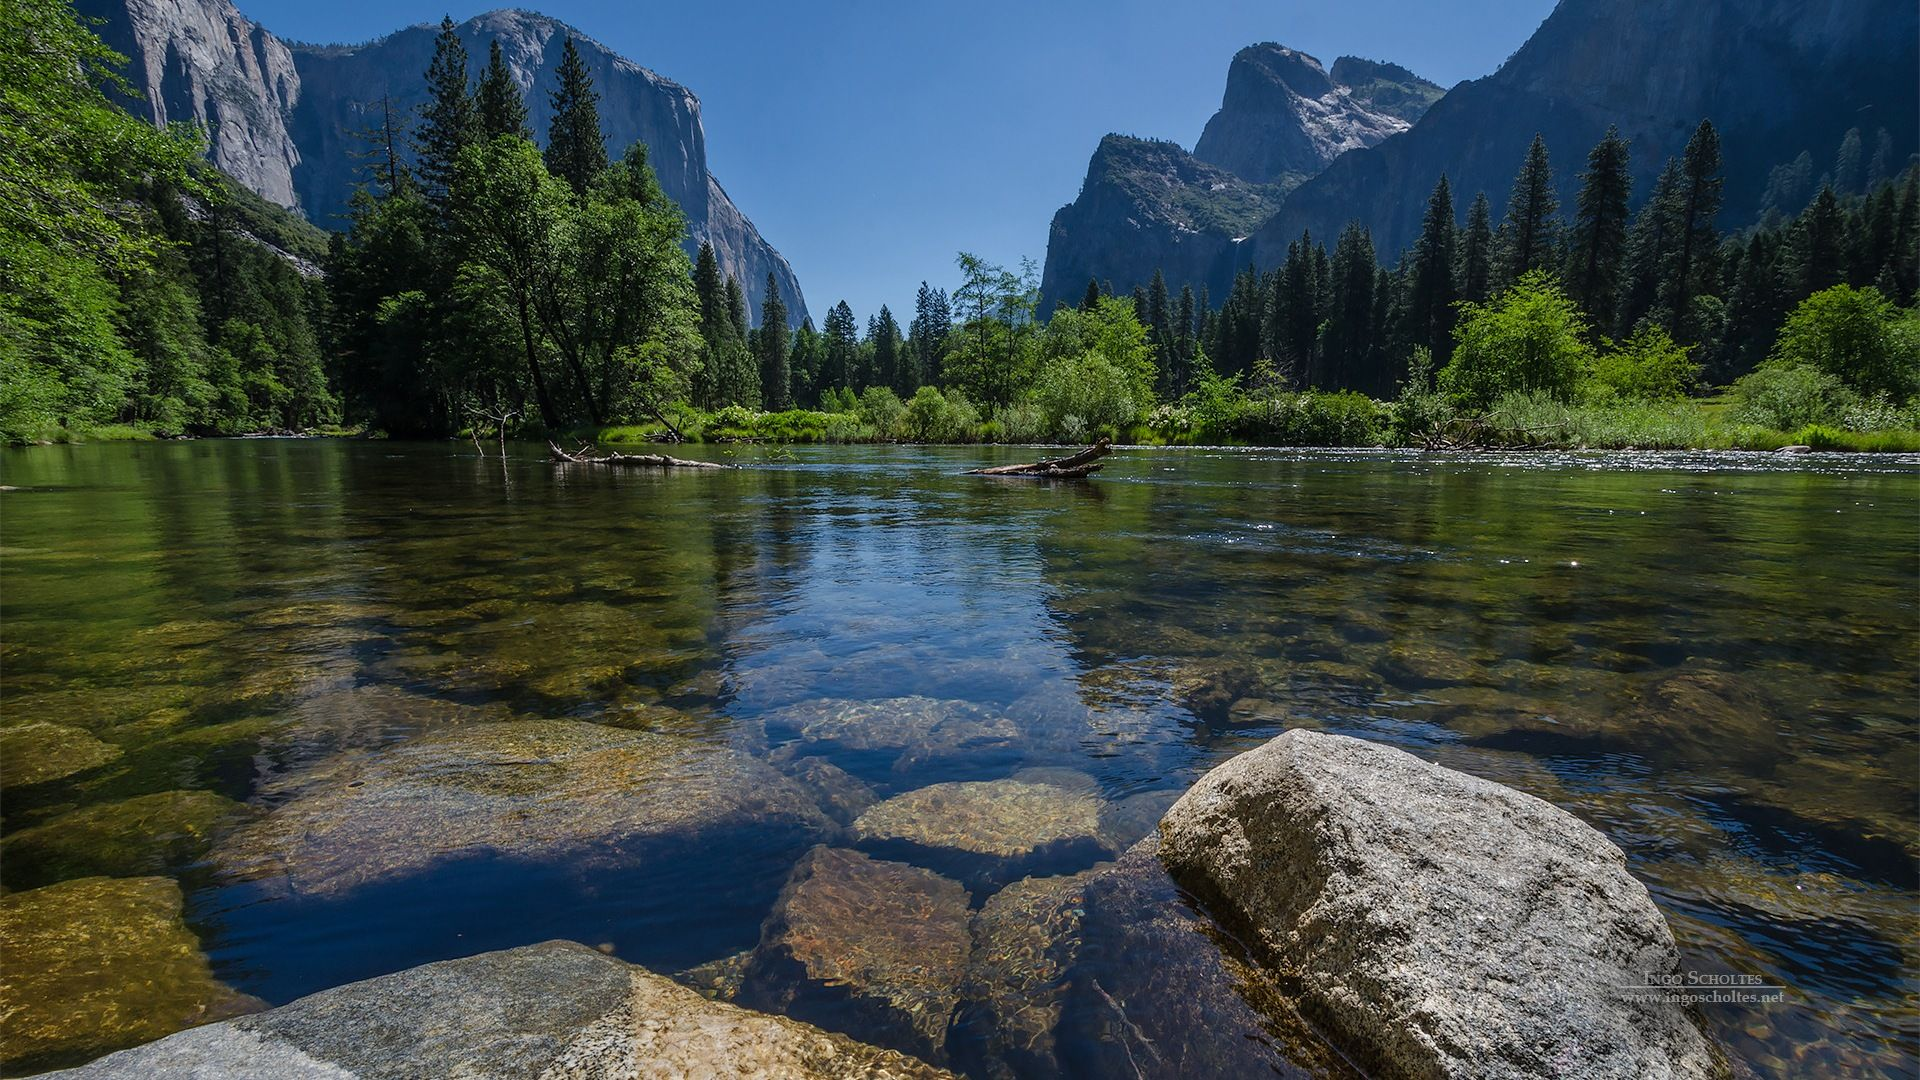 Windows 8 theme, Yosemite National Park HD wallpapers 1